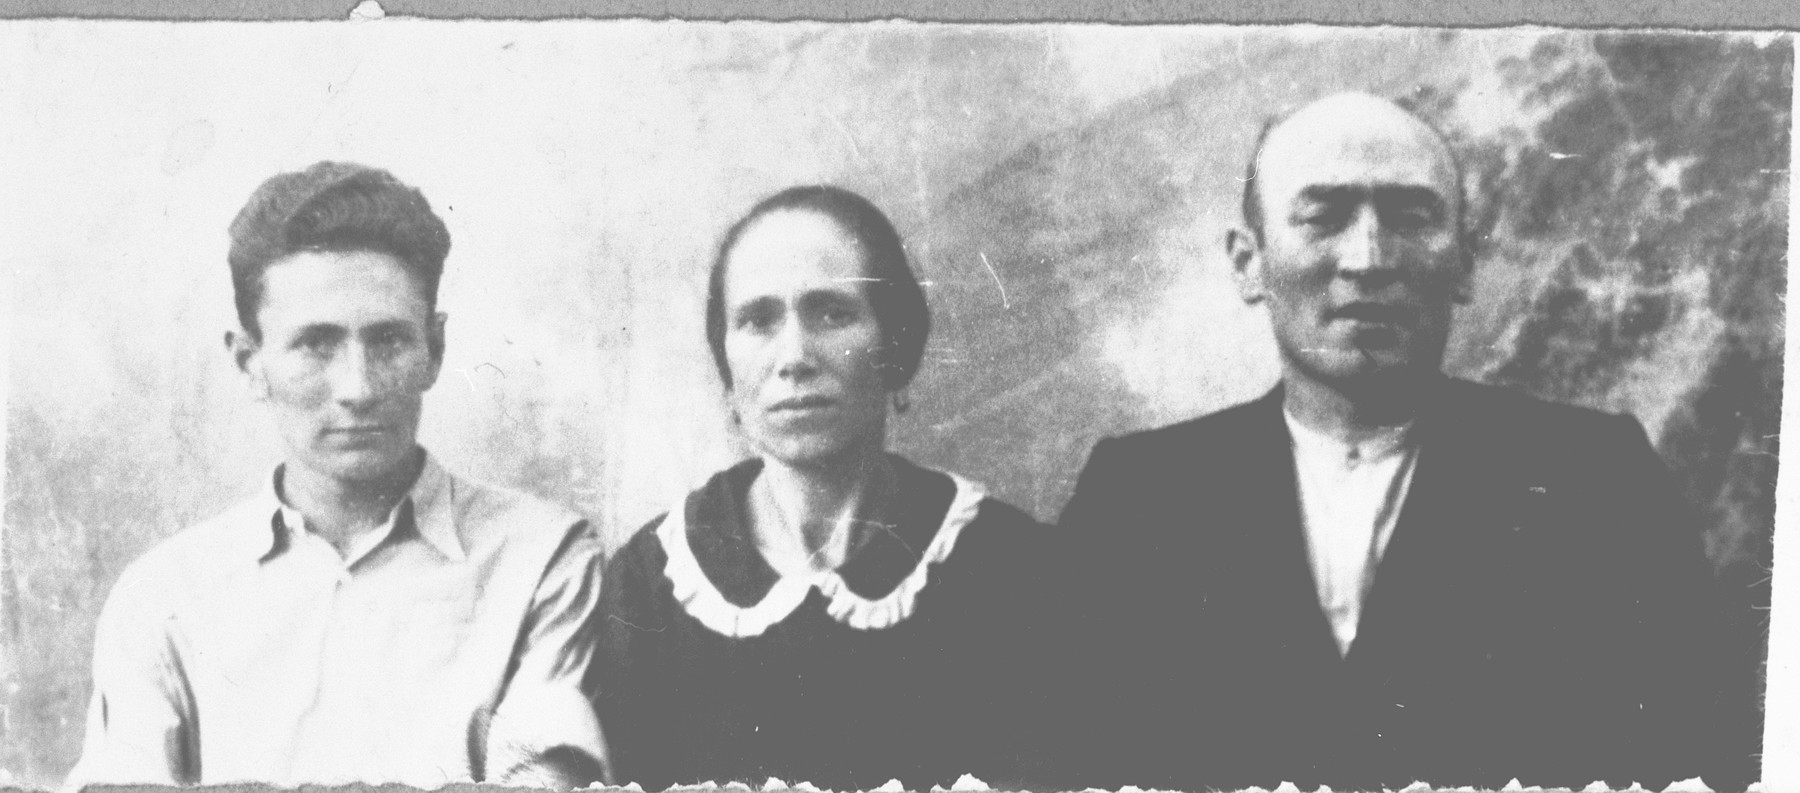 Portrait of Mentesh Kamchi, son of Avram Kamchi, Mentesh's wife, Dona, and his son, Simaya.  Mentesh was a tailor and Simaya, a student.  They lived at Svornitska 11 in Bitola.